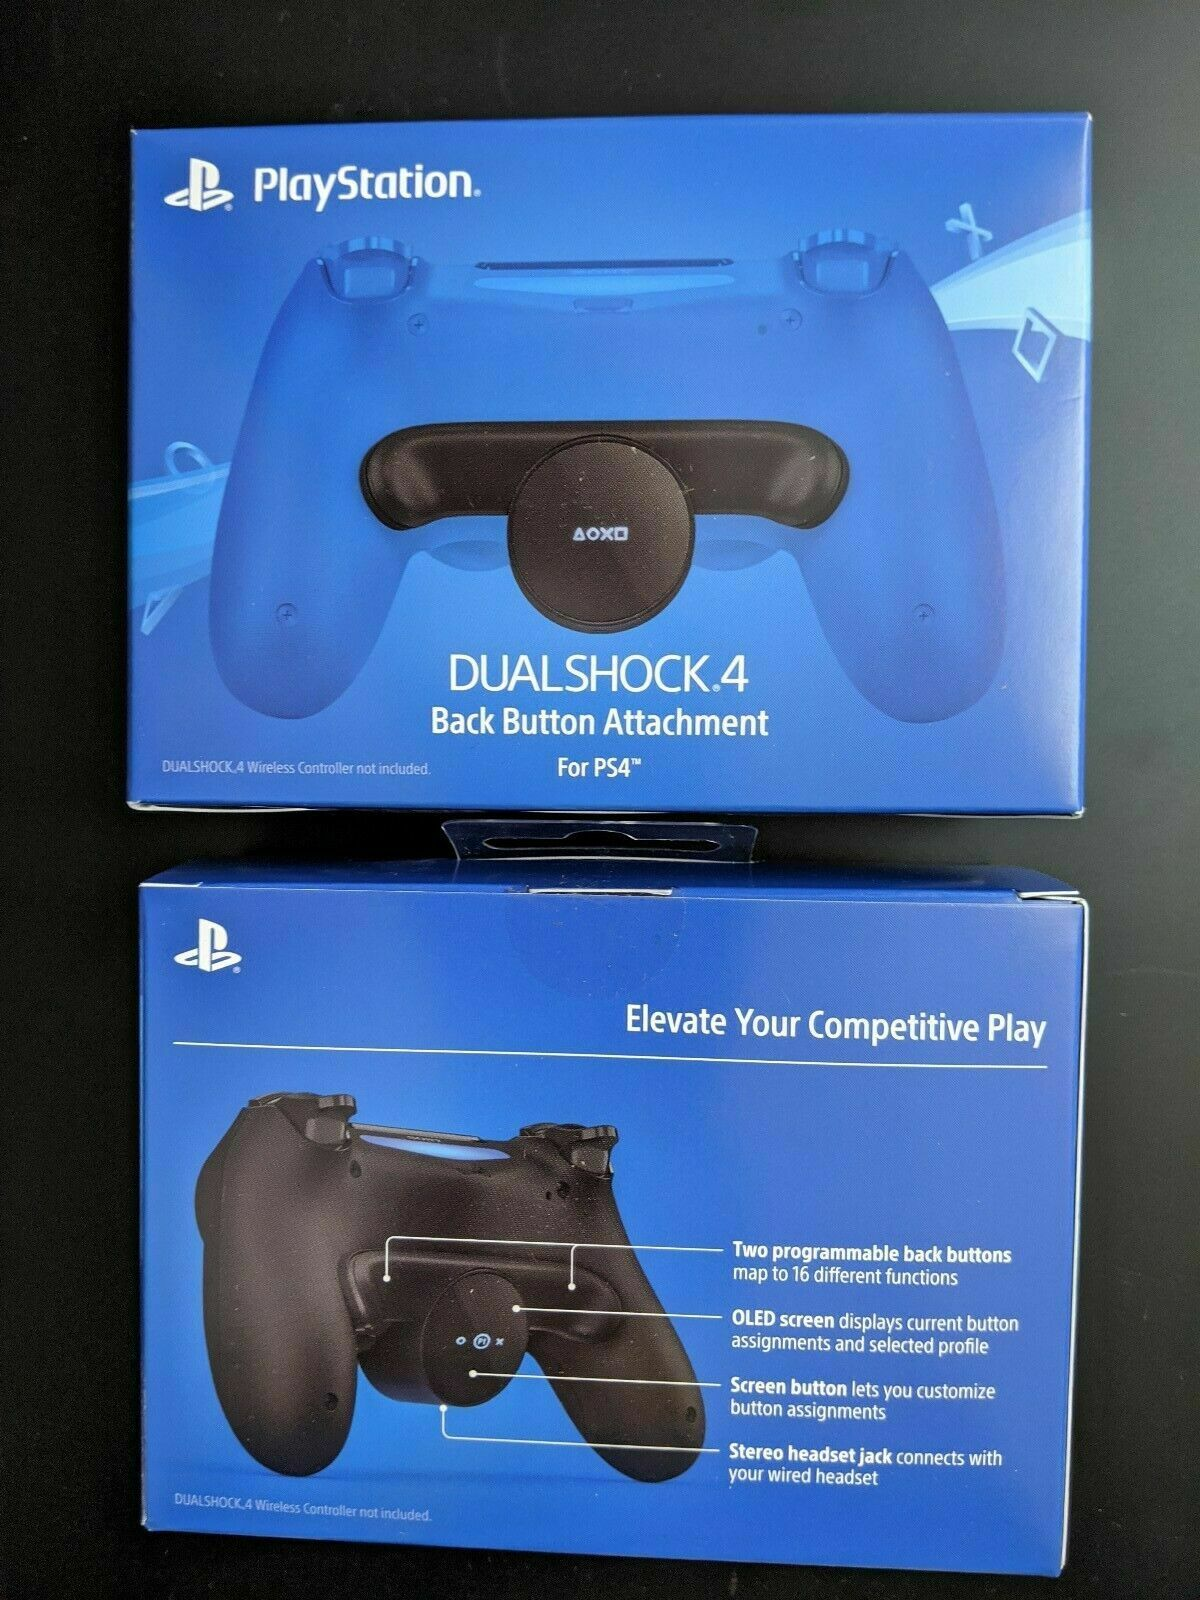 (2 PACK) Sony DualShock 4 Back Button Attachment Playstation PS4 *READY TO SHIP*